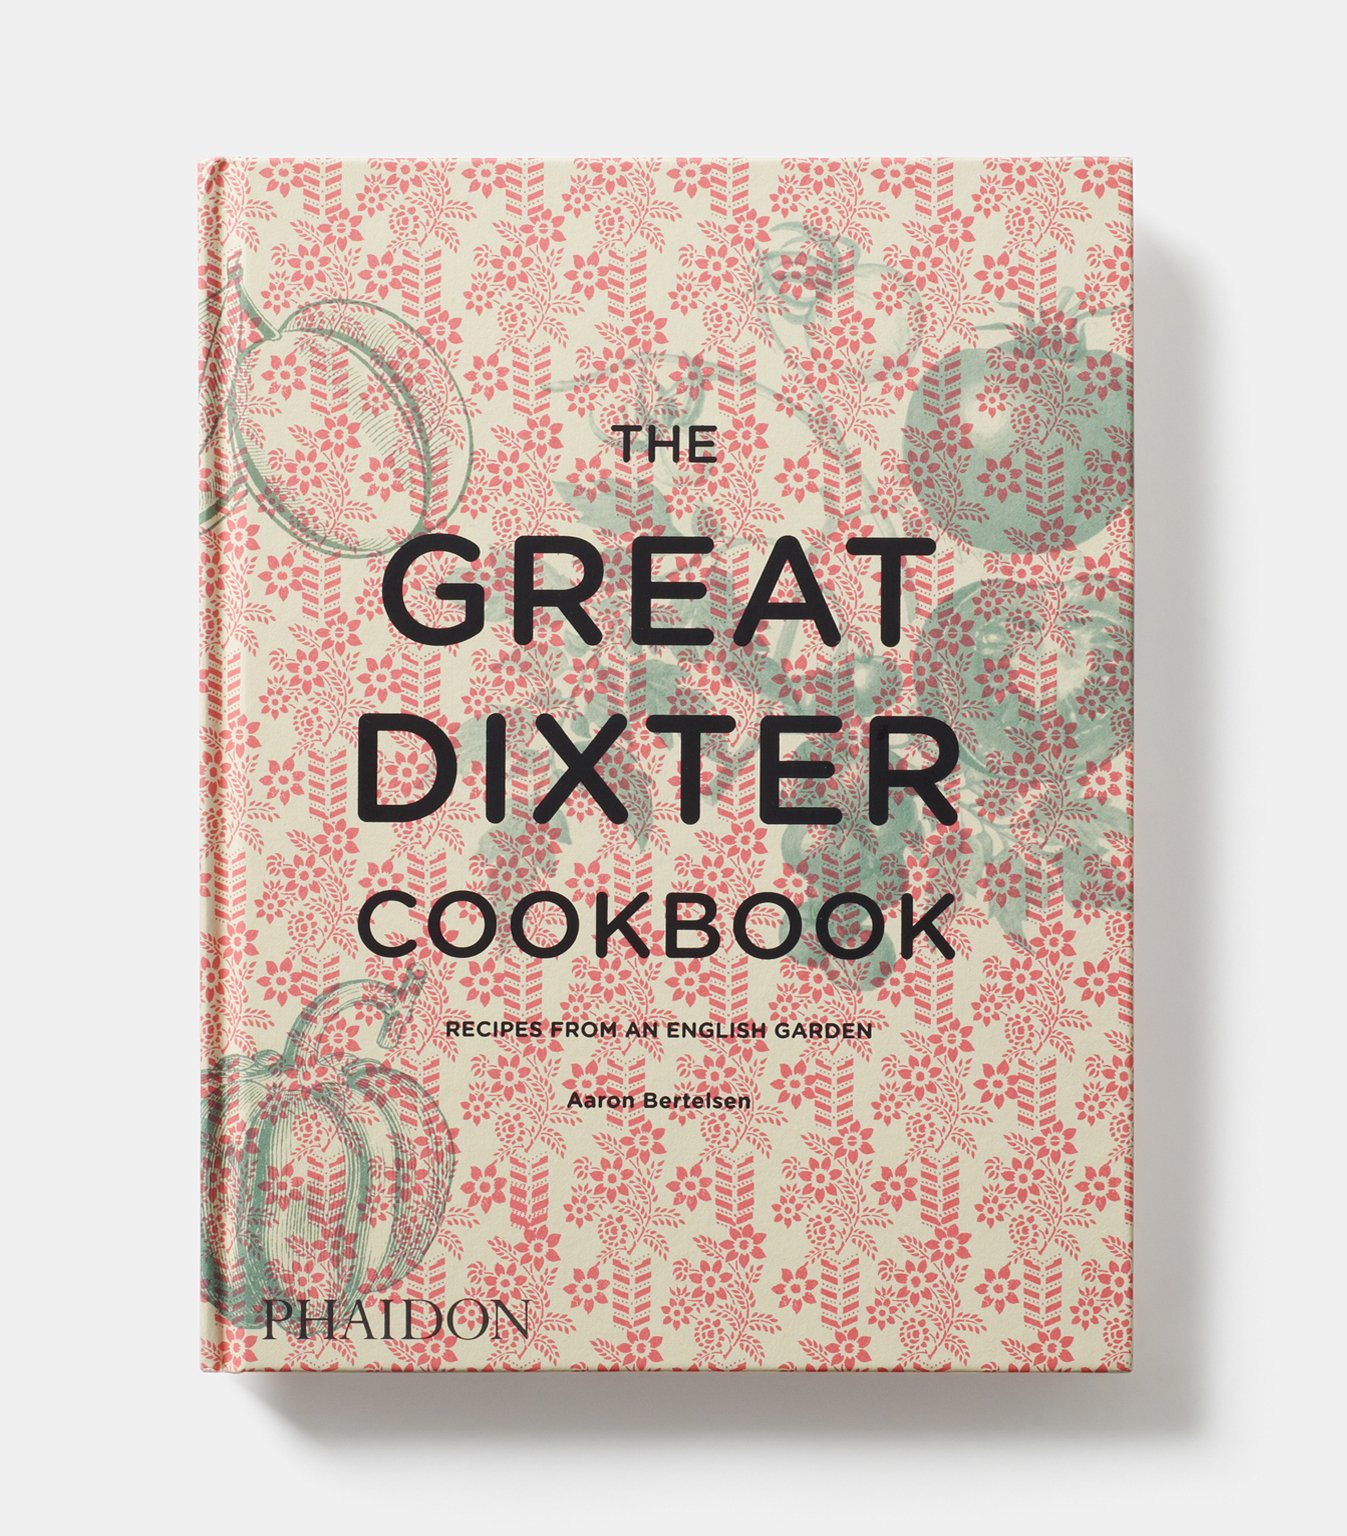 Aaron kitchen bath design gallery - The Great Dixter Cookbook Recipes From An English Garden Aaron Bertelsen 9780714874005 Amazon Com Books